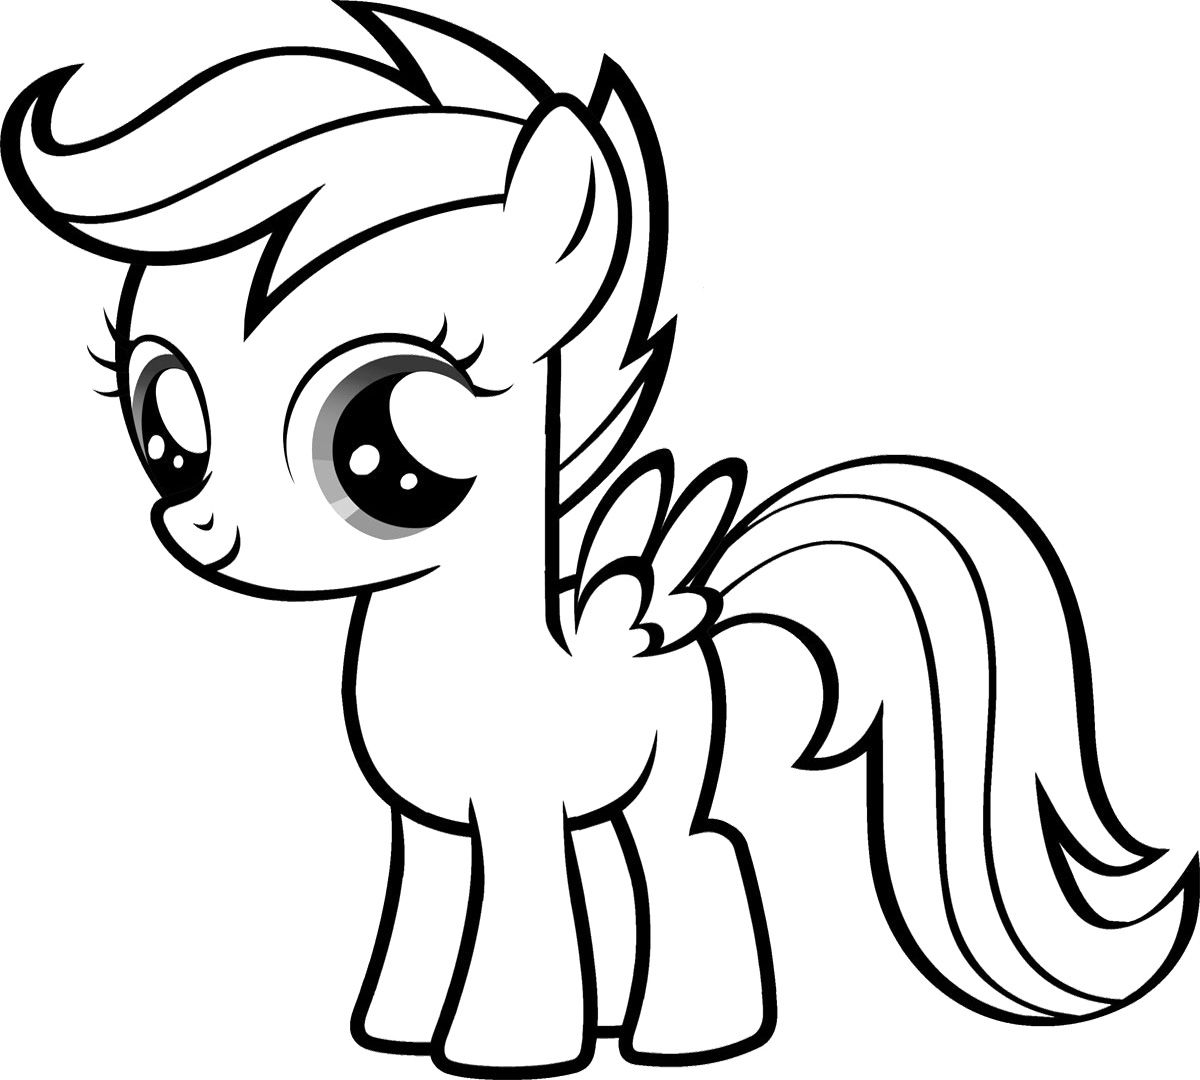 My little pony unicorn coloring pages - My Little Baby Free Coloring Pages Of Blank Pony